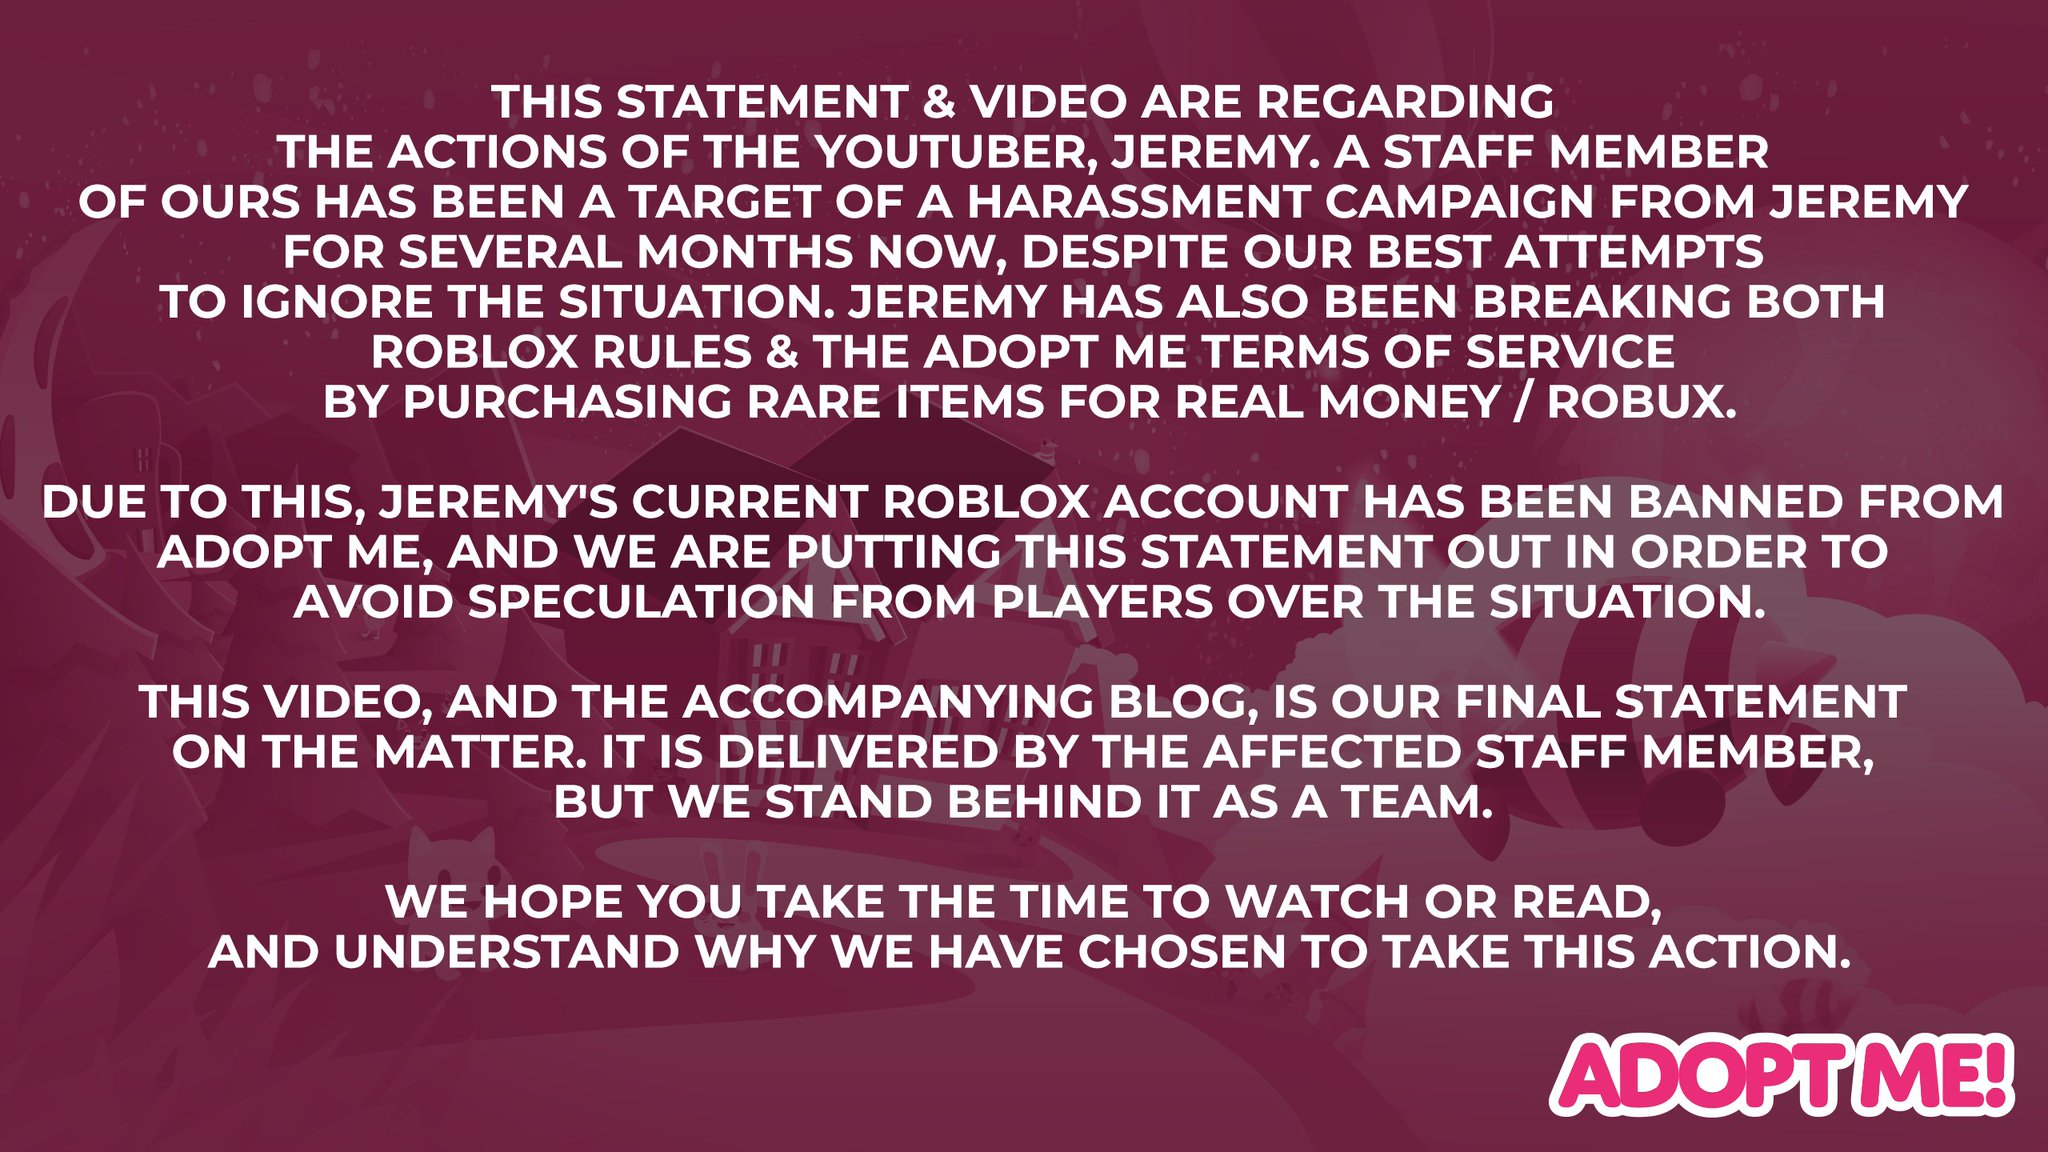 Roblox Youtubeur At Next New Now Vblog Adopt Me On Twitter This Statement Video Are Regarding The Actions Of The Youtuber Jeremy Blogpost Https T Co Vahfdwbdl3 Video Https T Co Vbgbjbg1mc Https T Co Ckdntobqcw